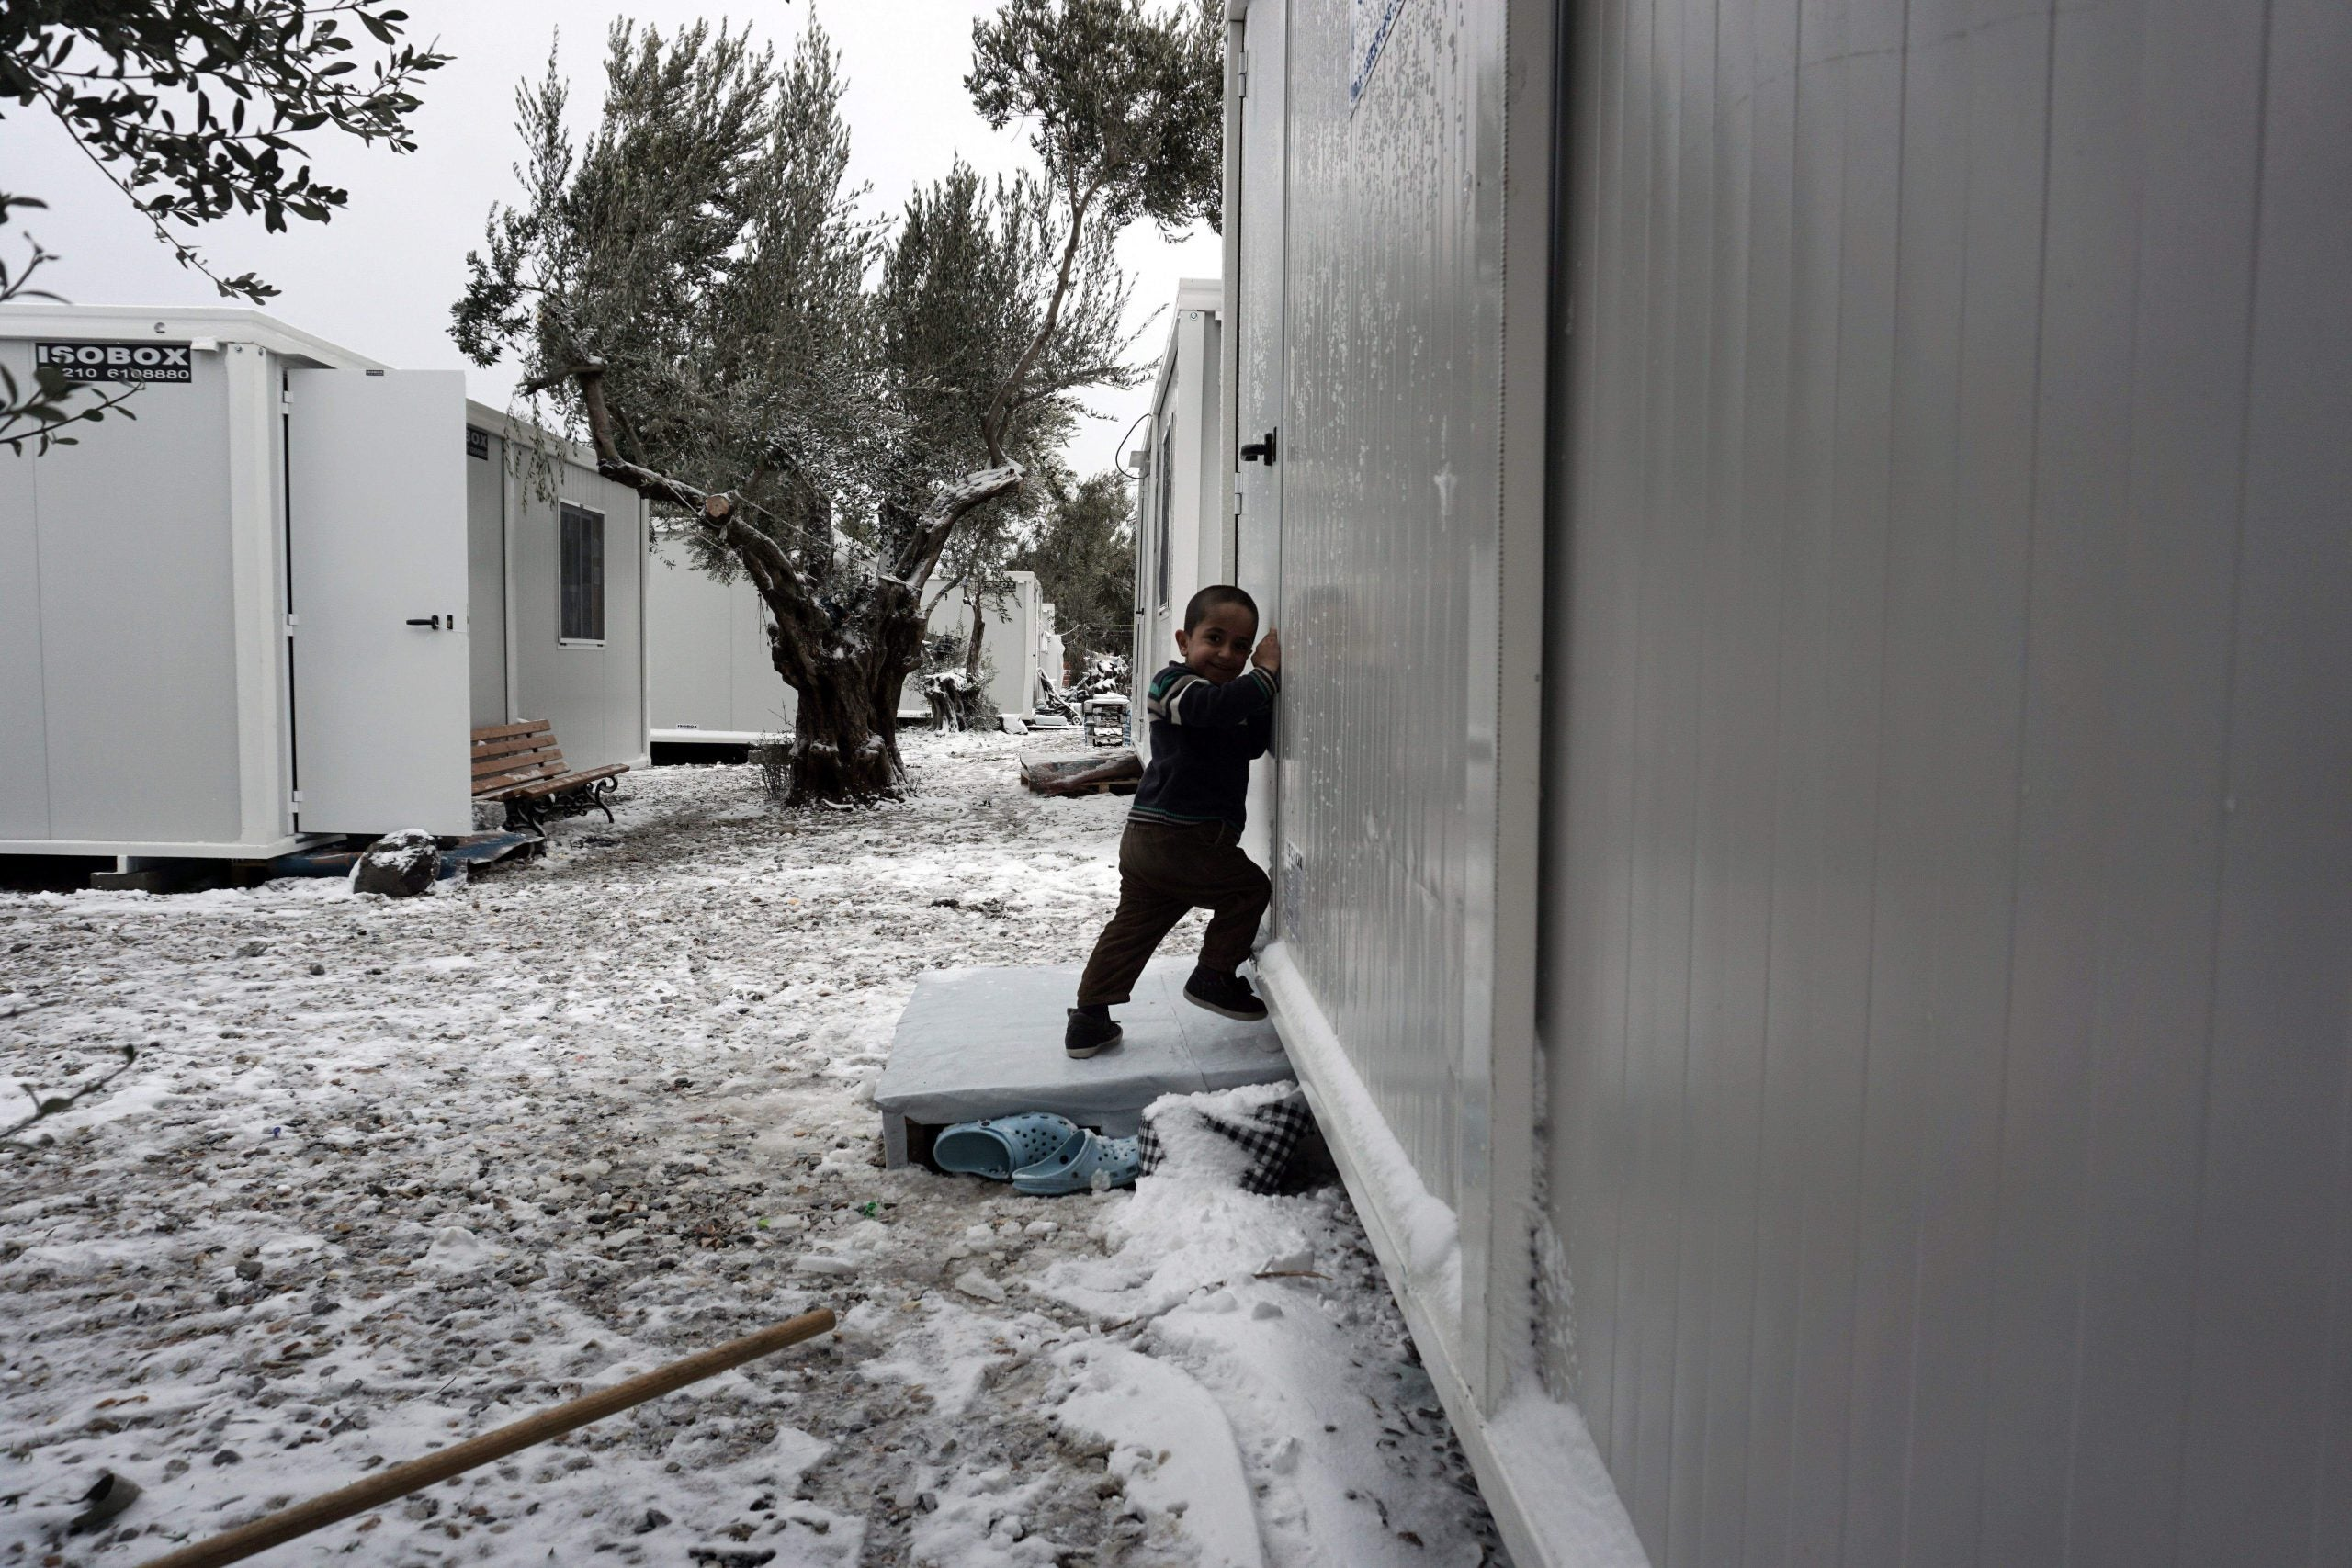 Greece's frozen children: what will happen to young refugees?